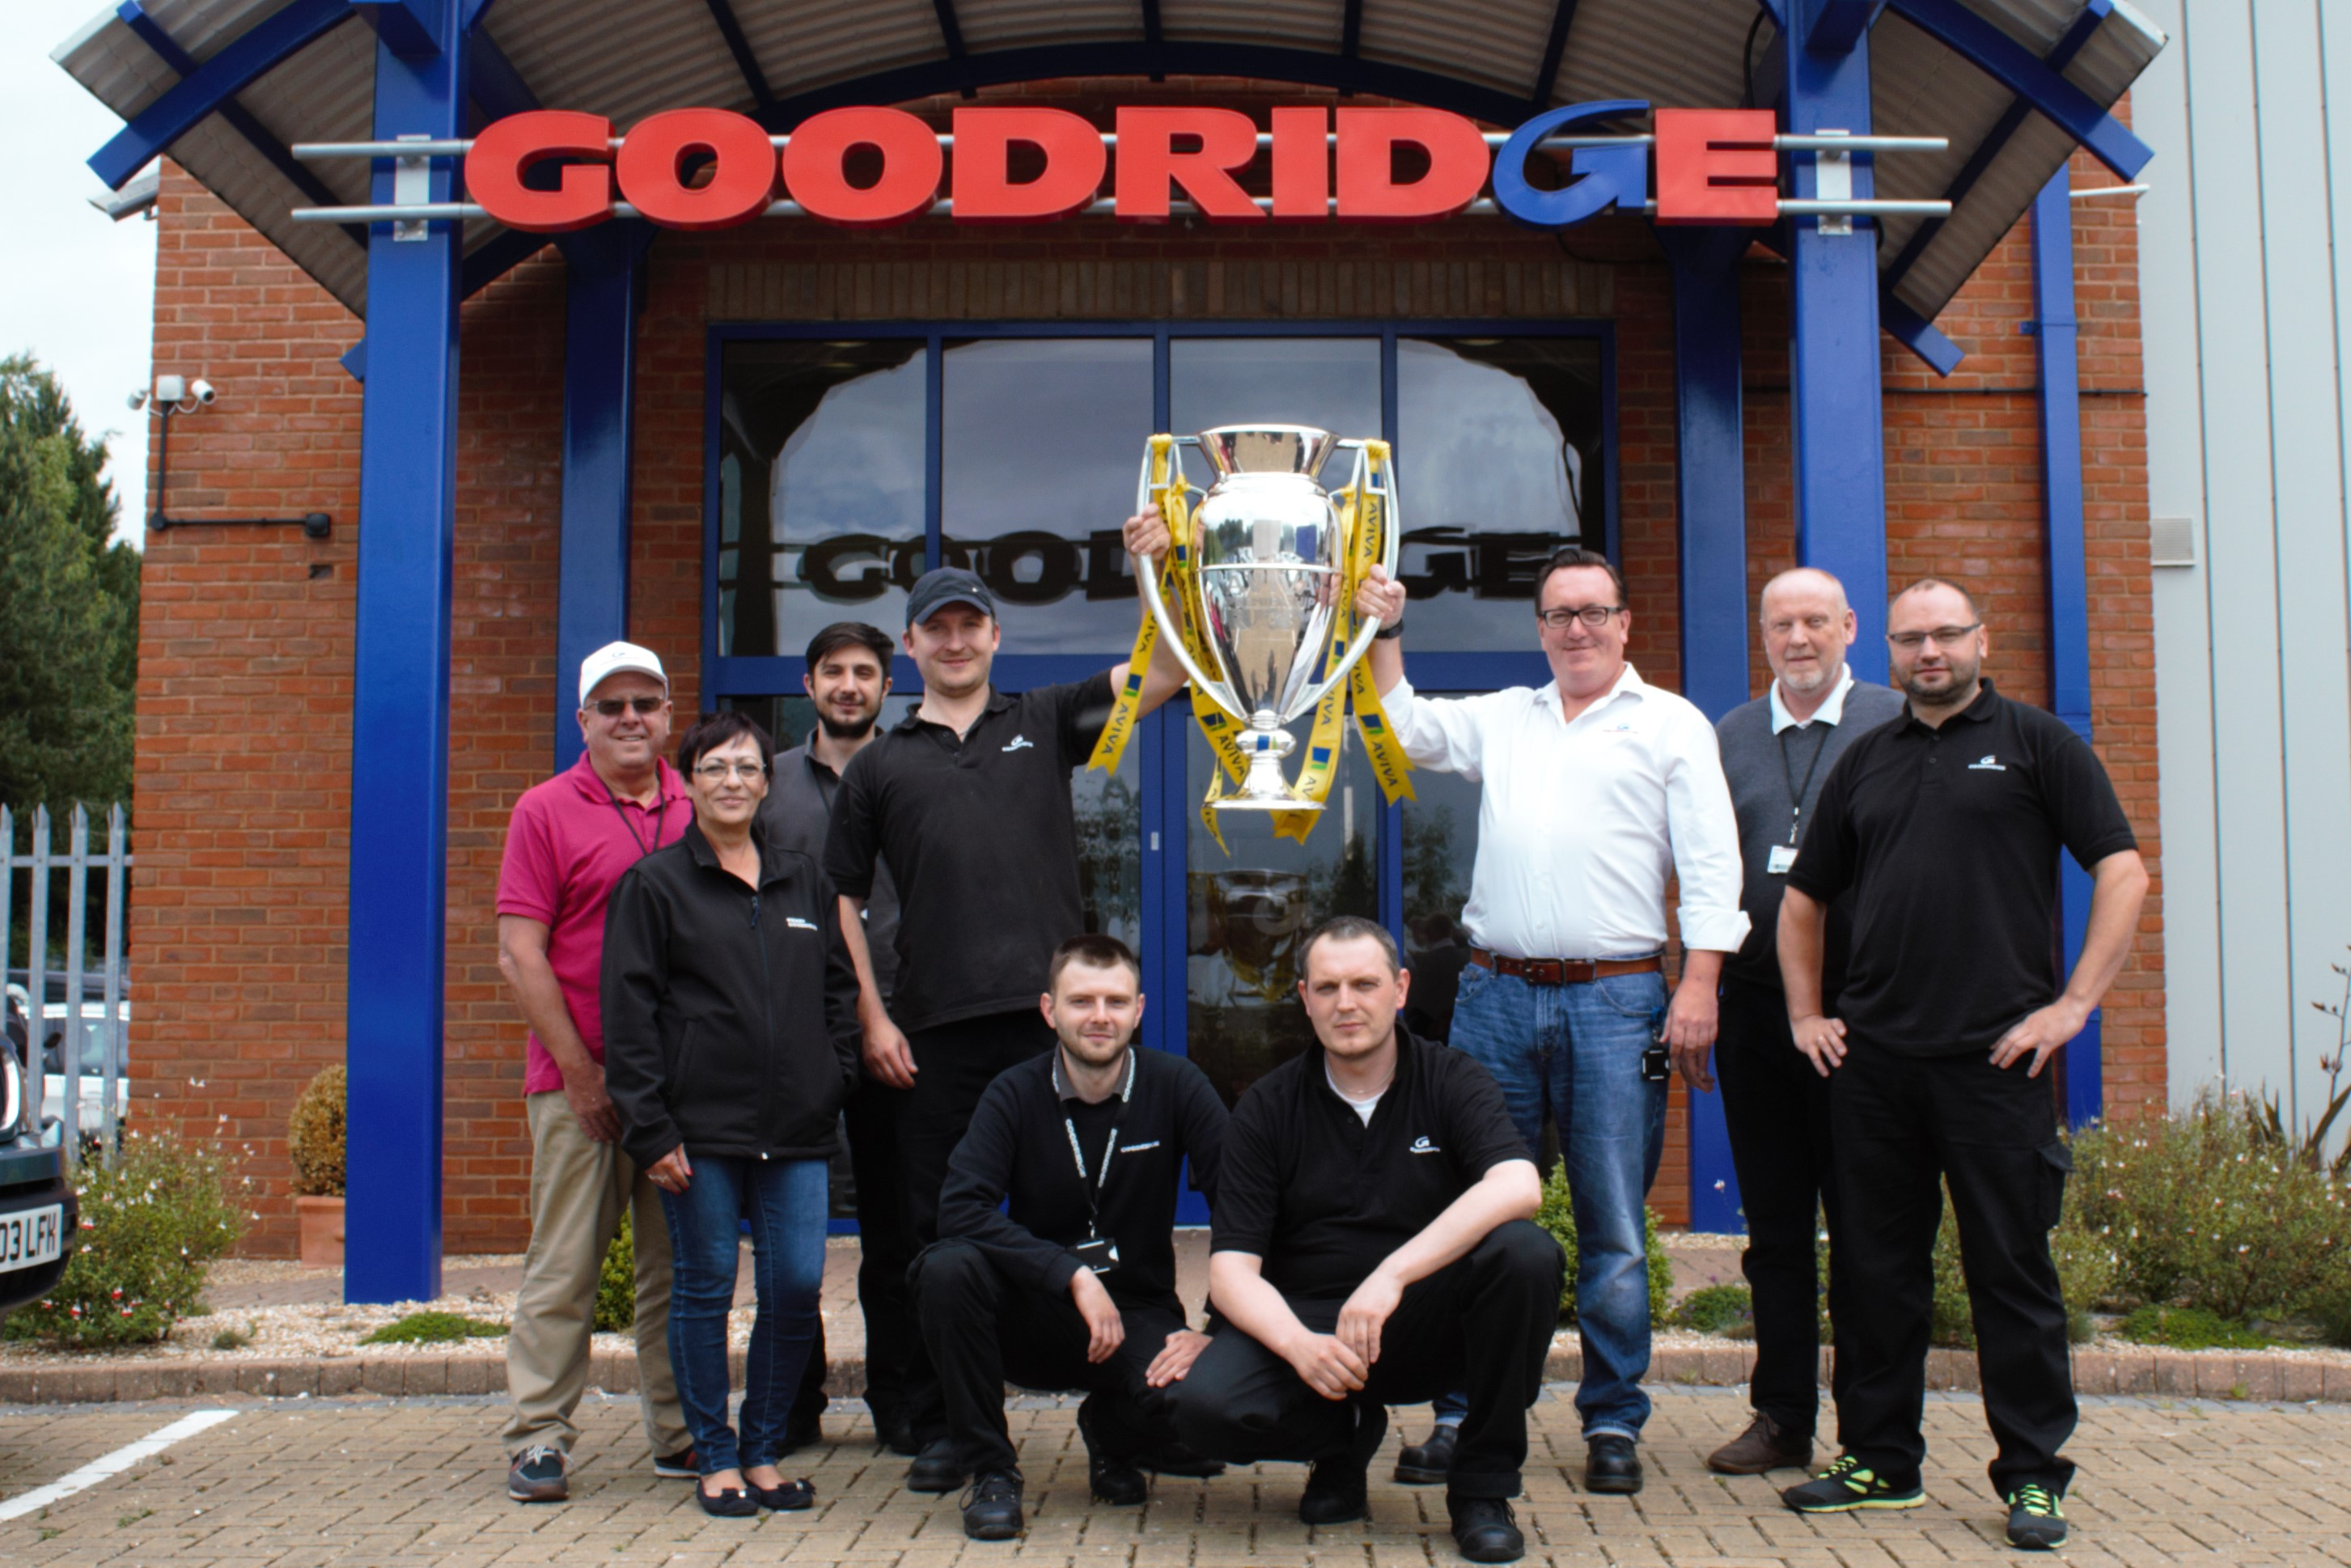 Goodridge Ltd, congratulate Exeter Chiefs on Premiership WIN!